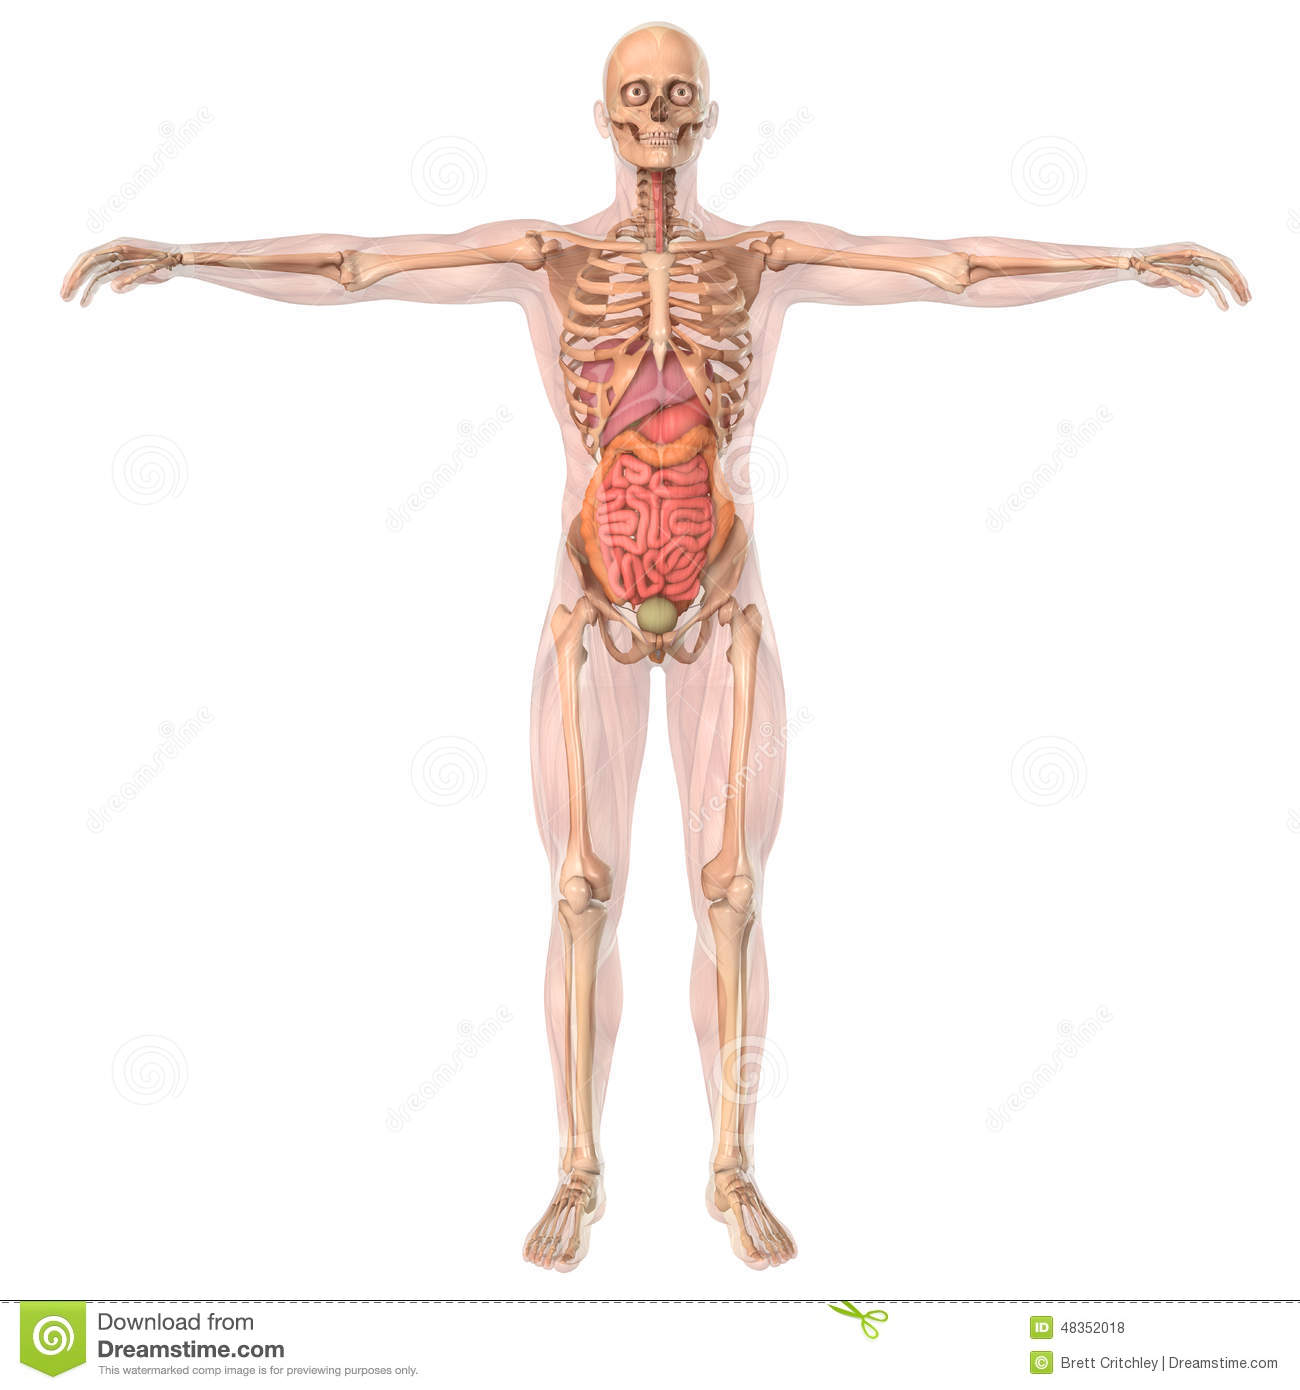 human anatomy skeleton and organs stock illustration - image: 48352018, Skeleton